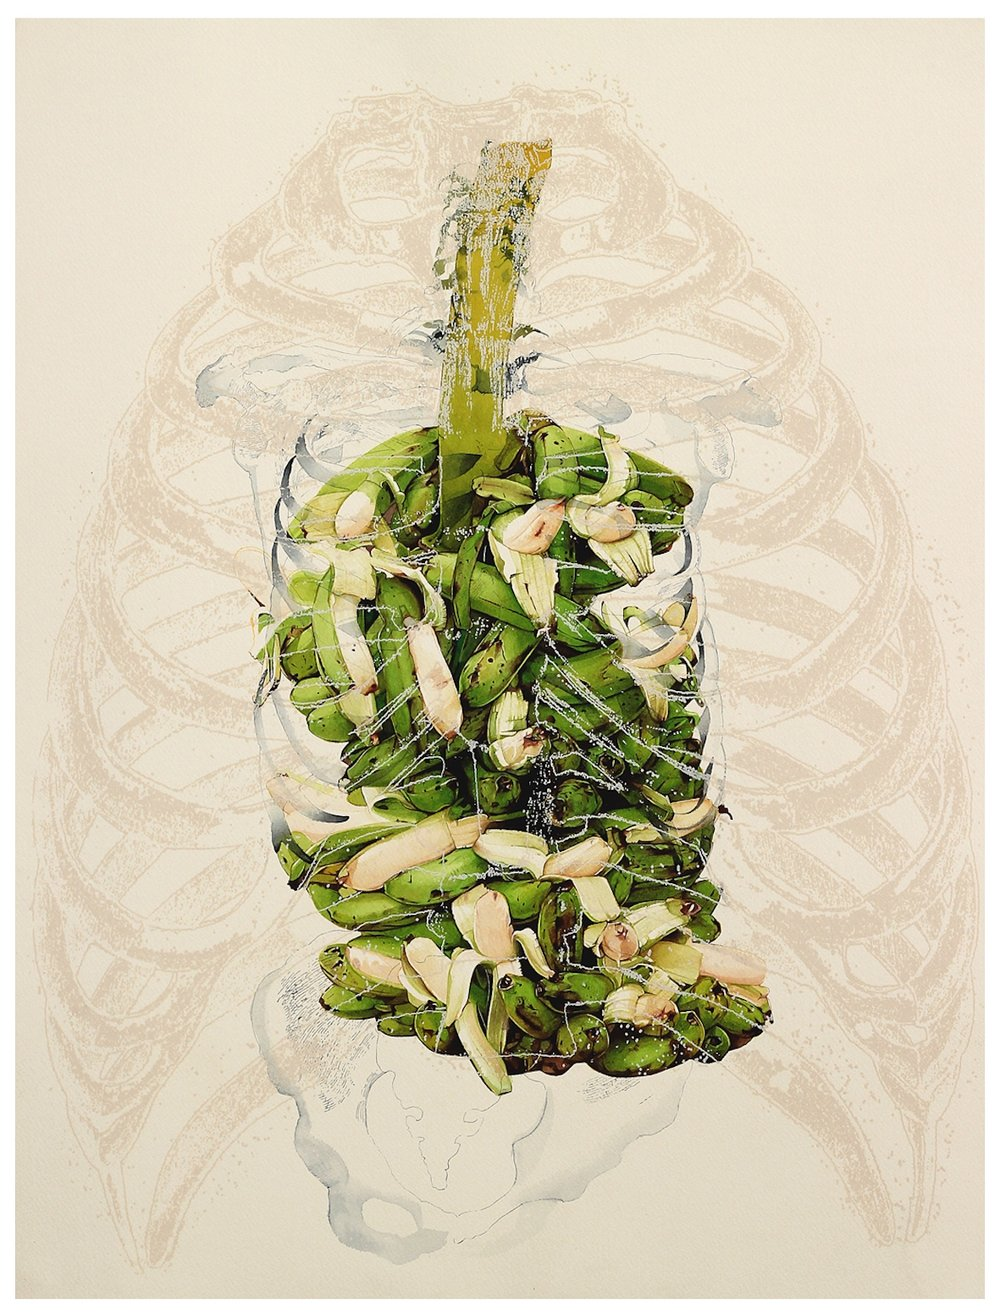 V. Ramesh, 'Body/Offering', 2014, watercolour and gouache on paper, 24 x 18 in. Image courtesy Gallery Threshold.